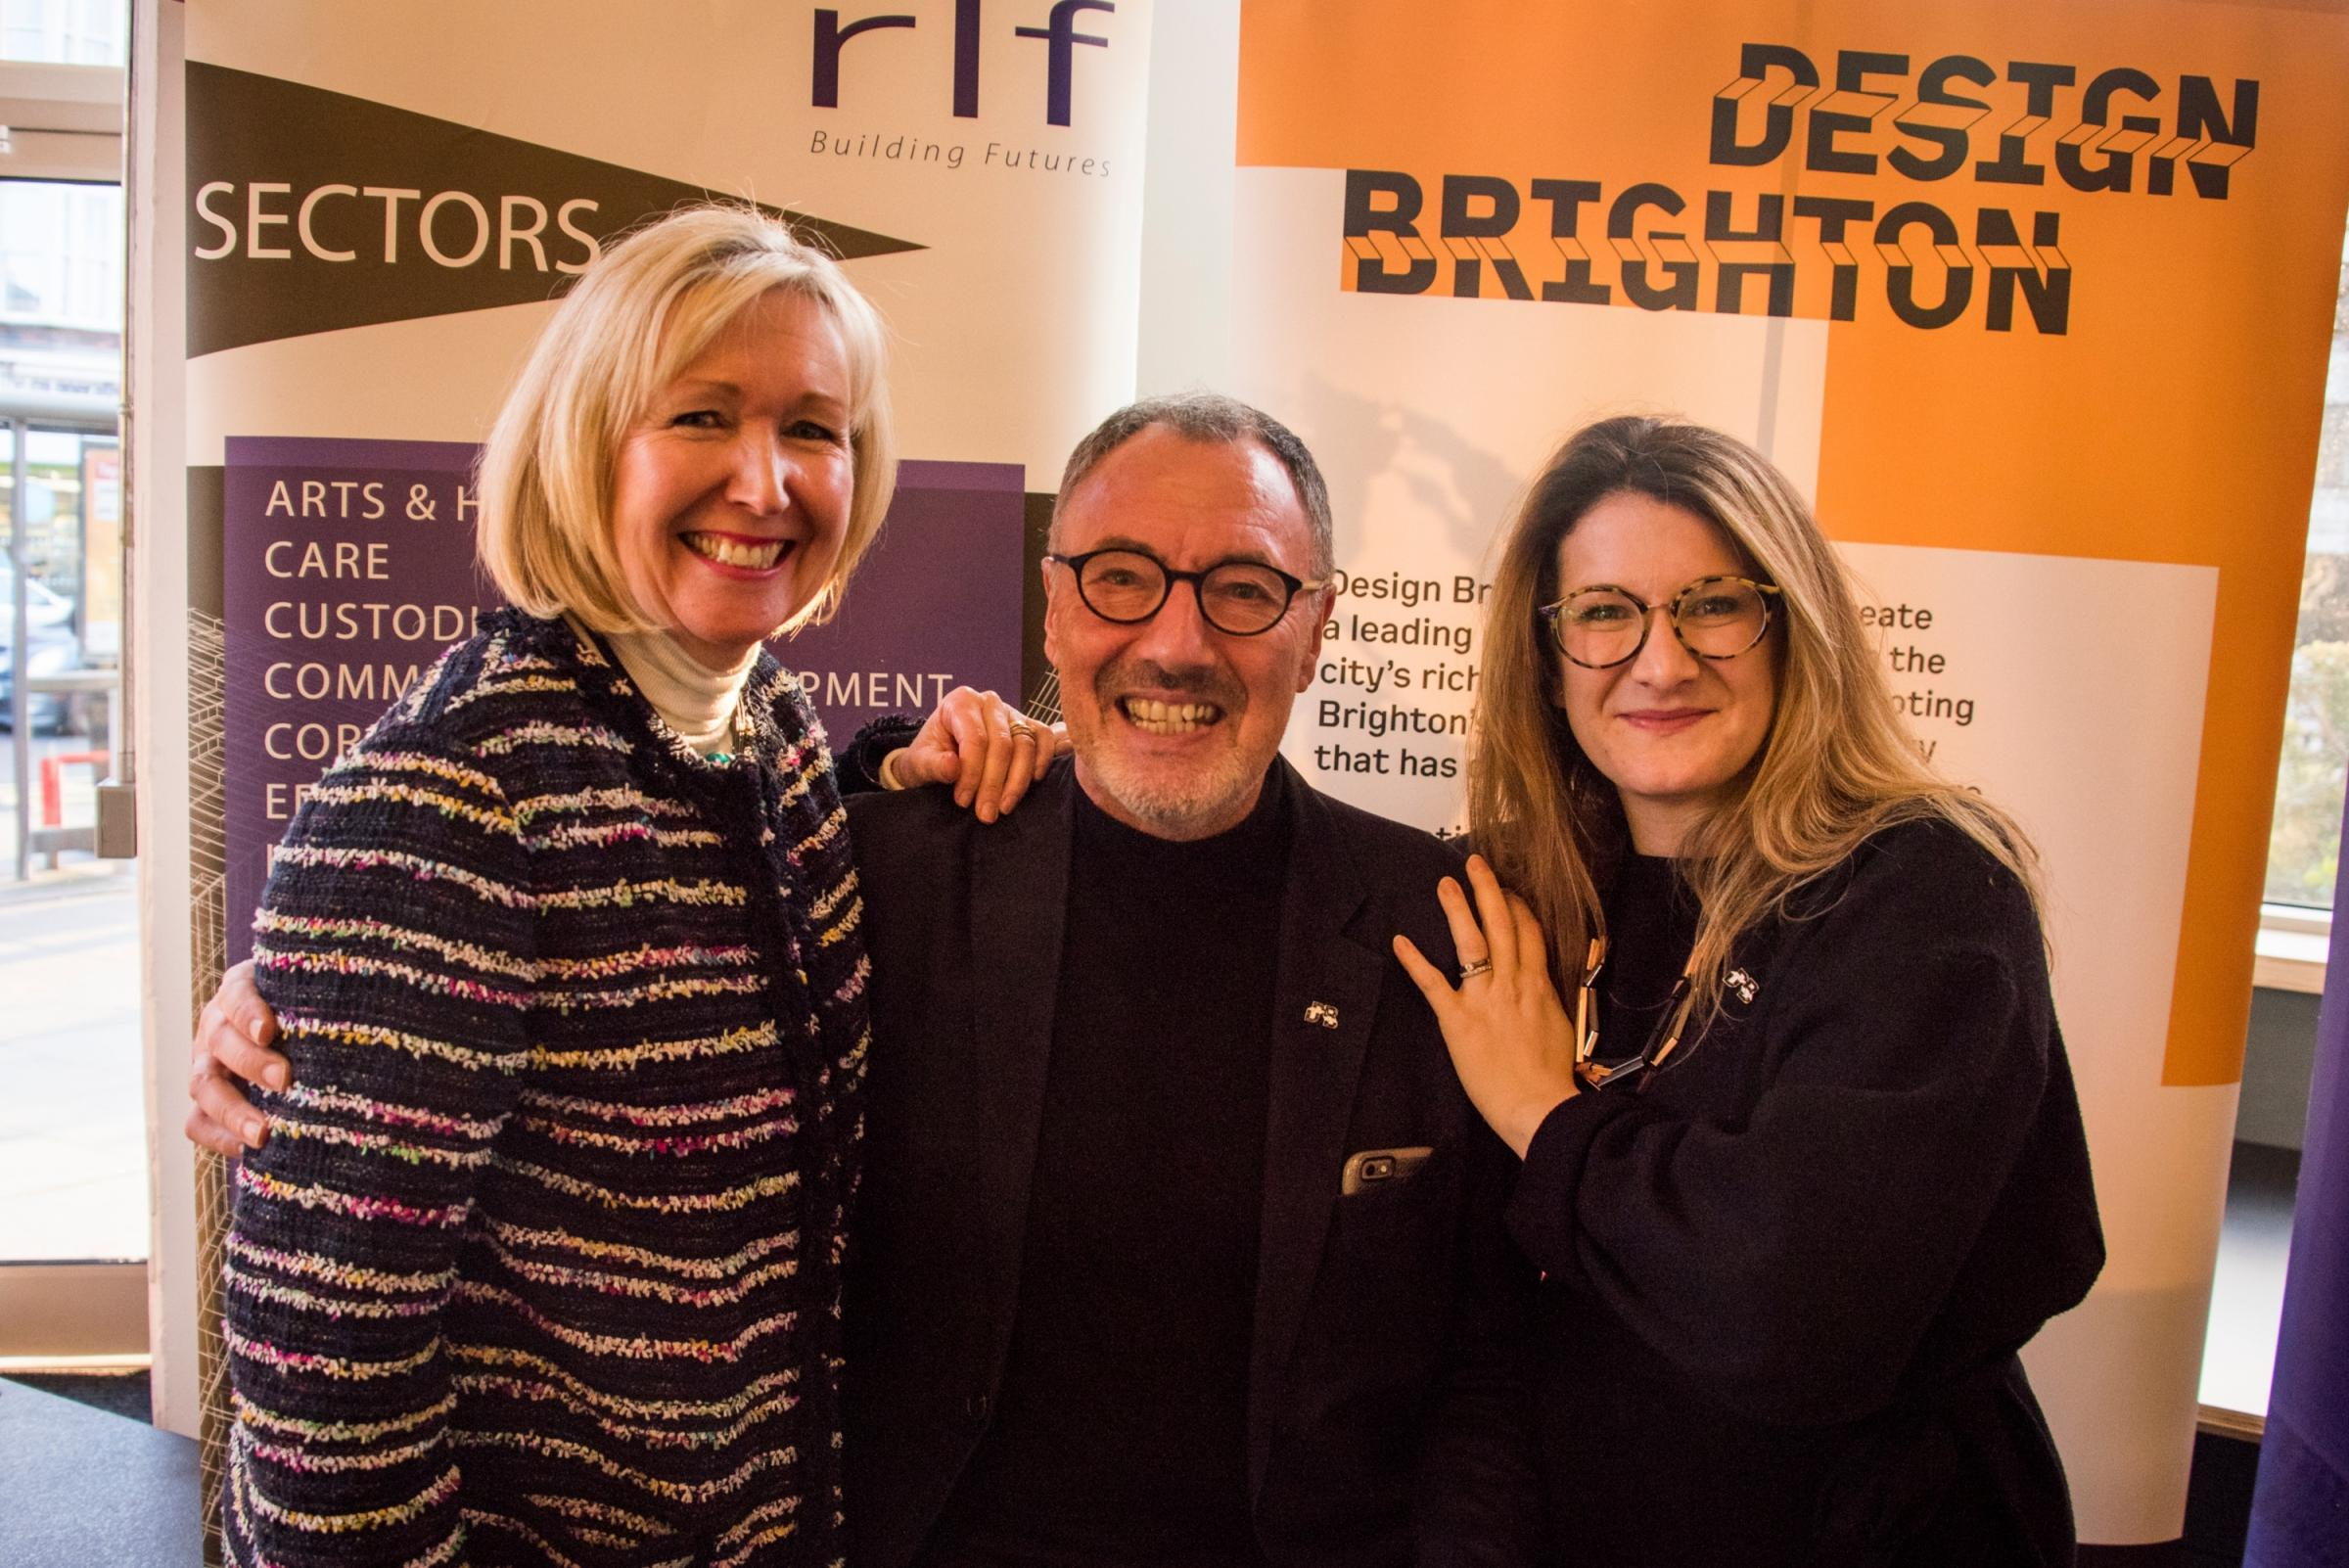 Sally-Anne Murray, John Cowell, and Sophie Law-Smith from Design Brighton